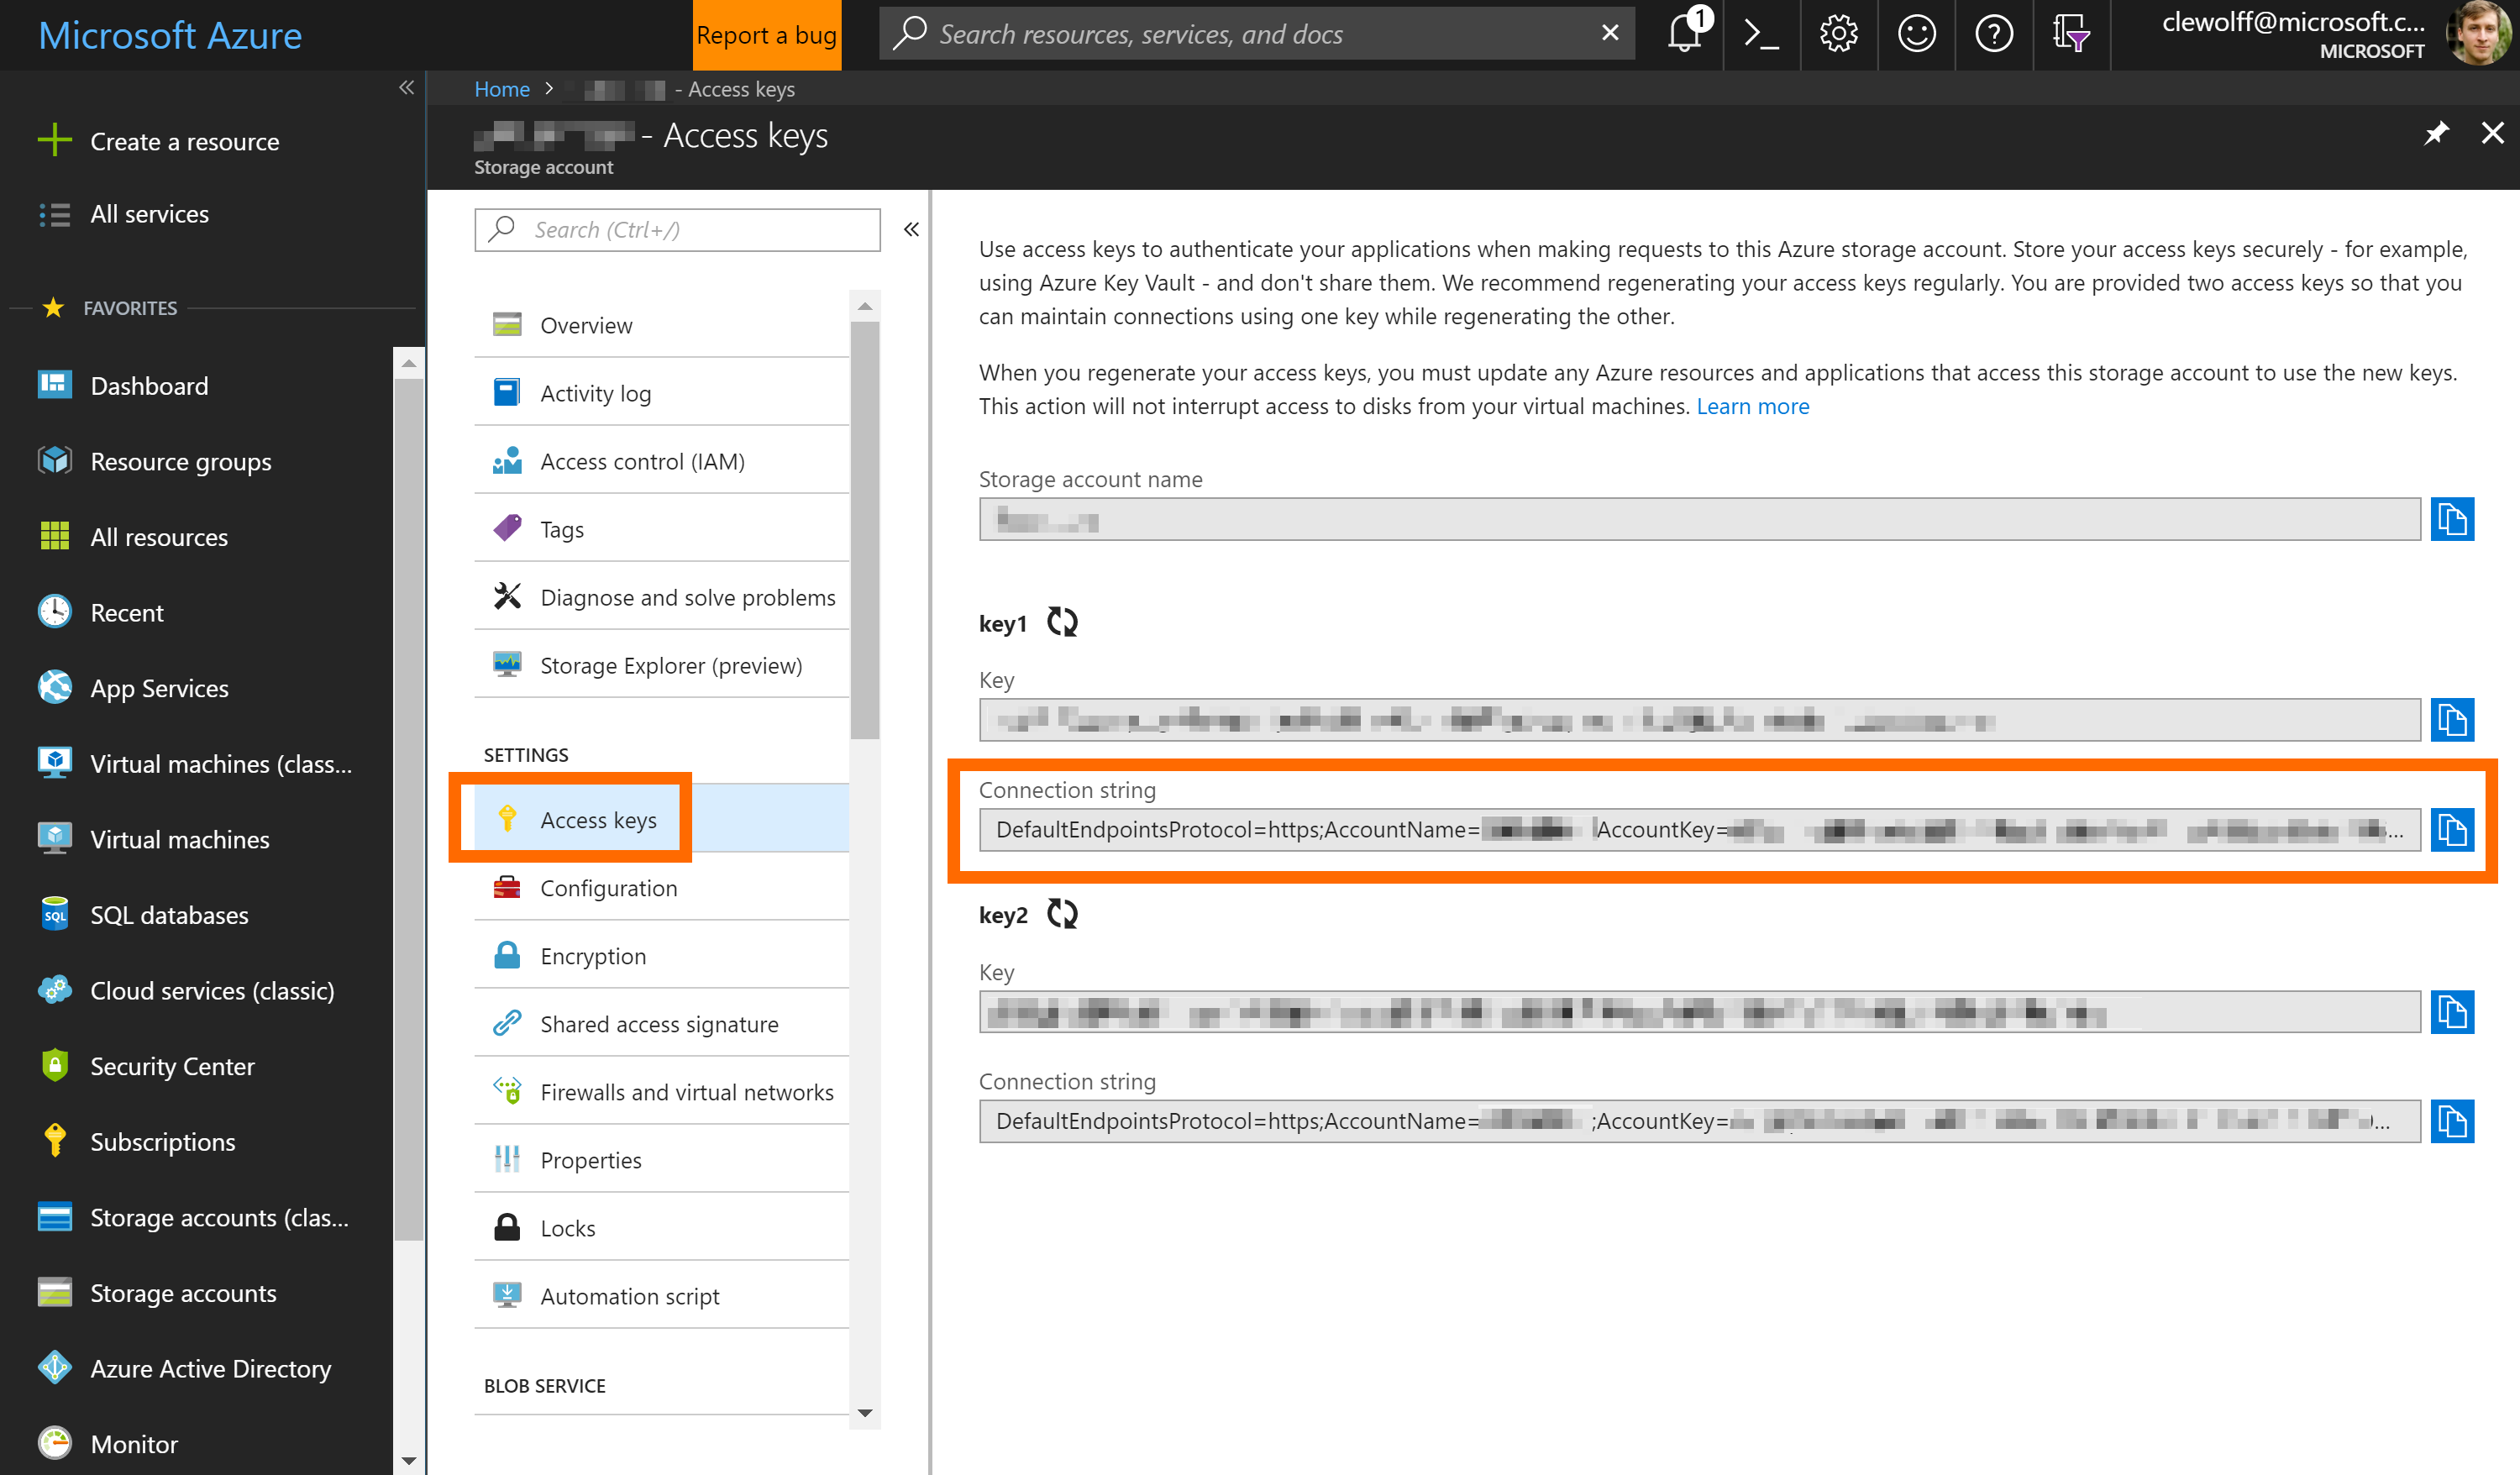 Screenshot showing location of ConnectionString in Azure Portal